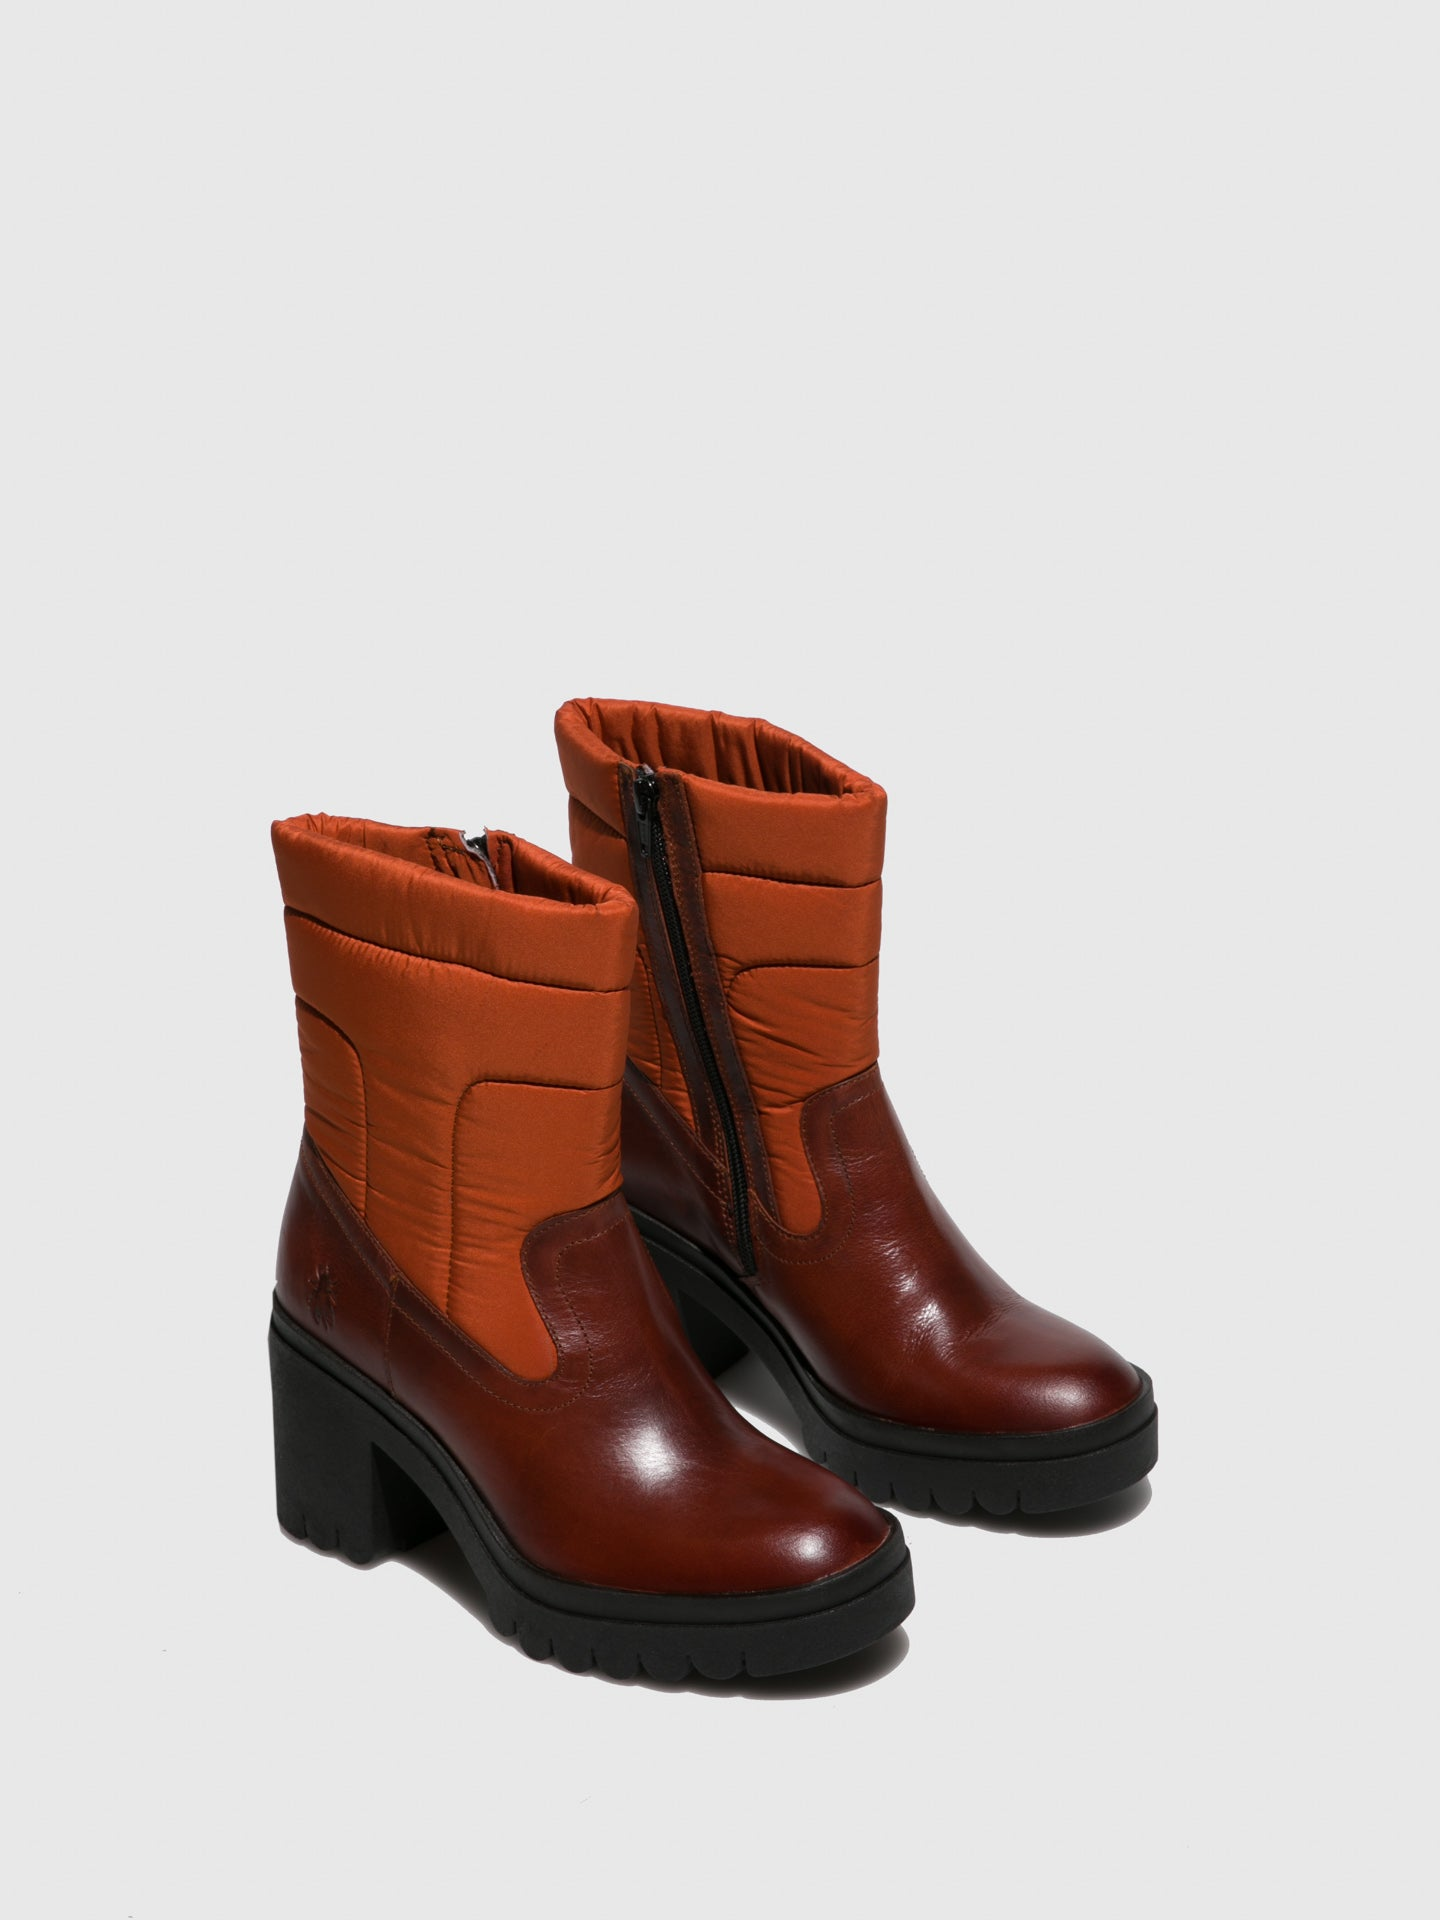 Fly London Zip Up Ankle Boots TYKE661FLY RUG/NYLON BRICK/ORANGE